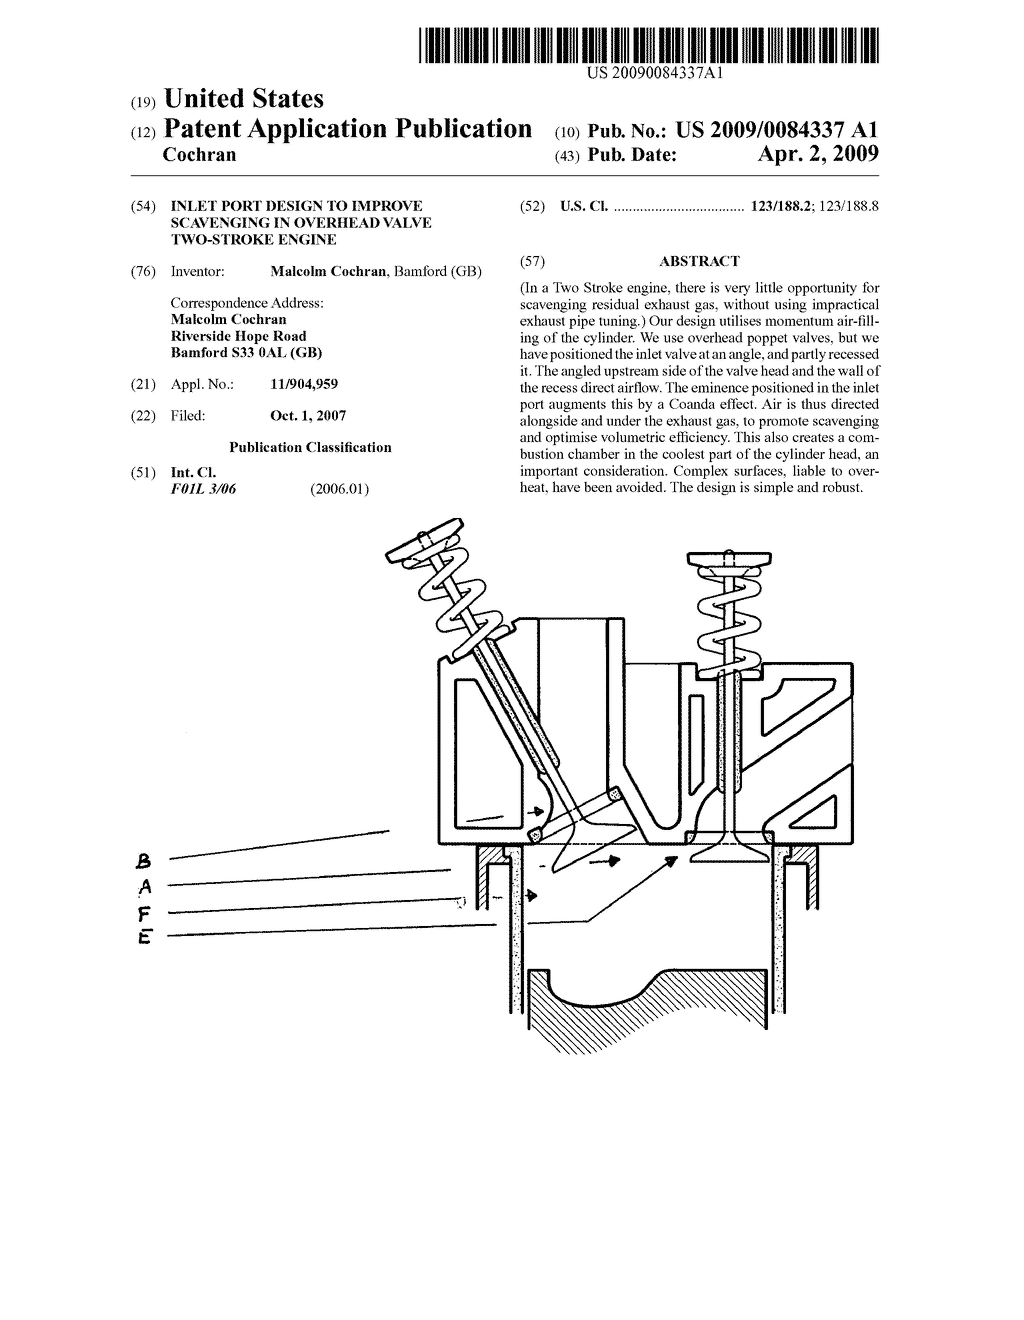 hight resolution of inlet port design to improve scavenging in overhead valve two stroke engine diagram